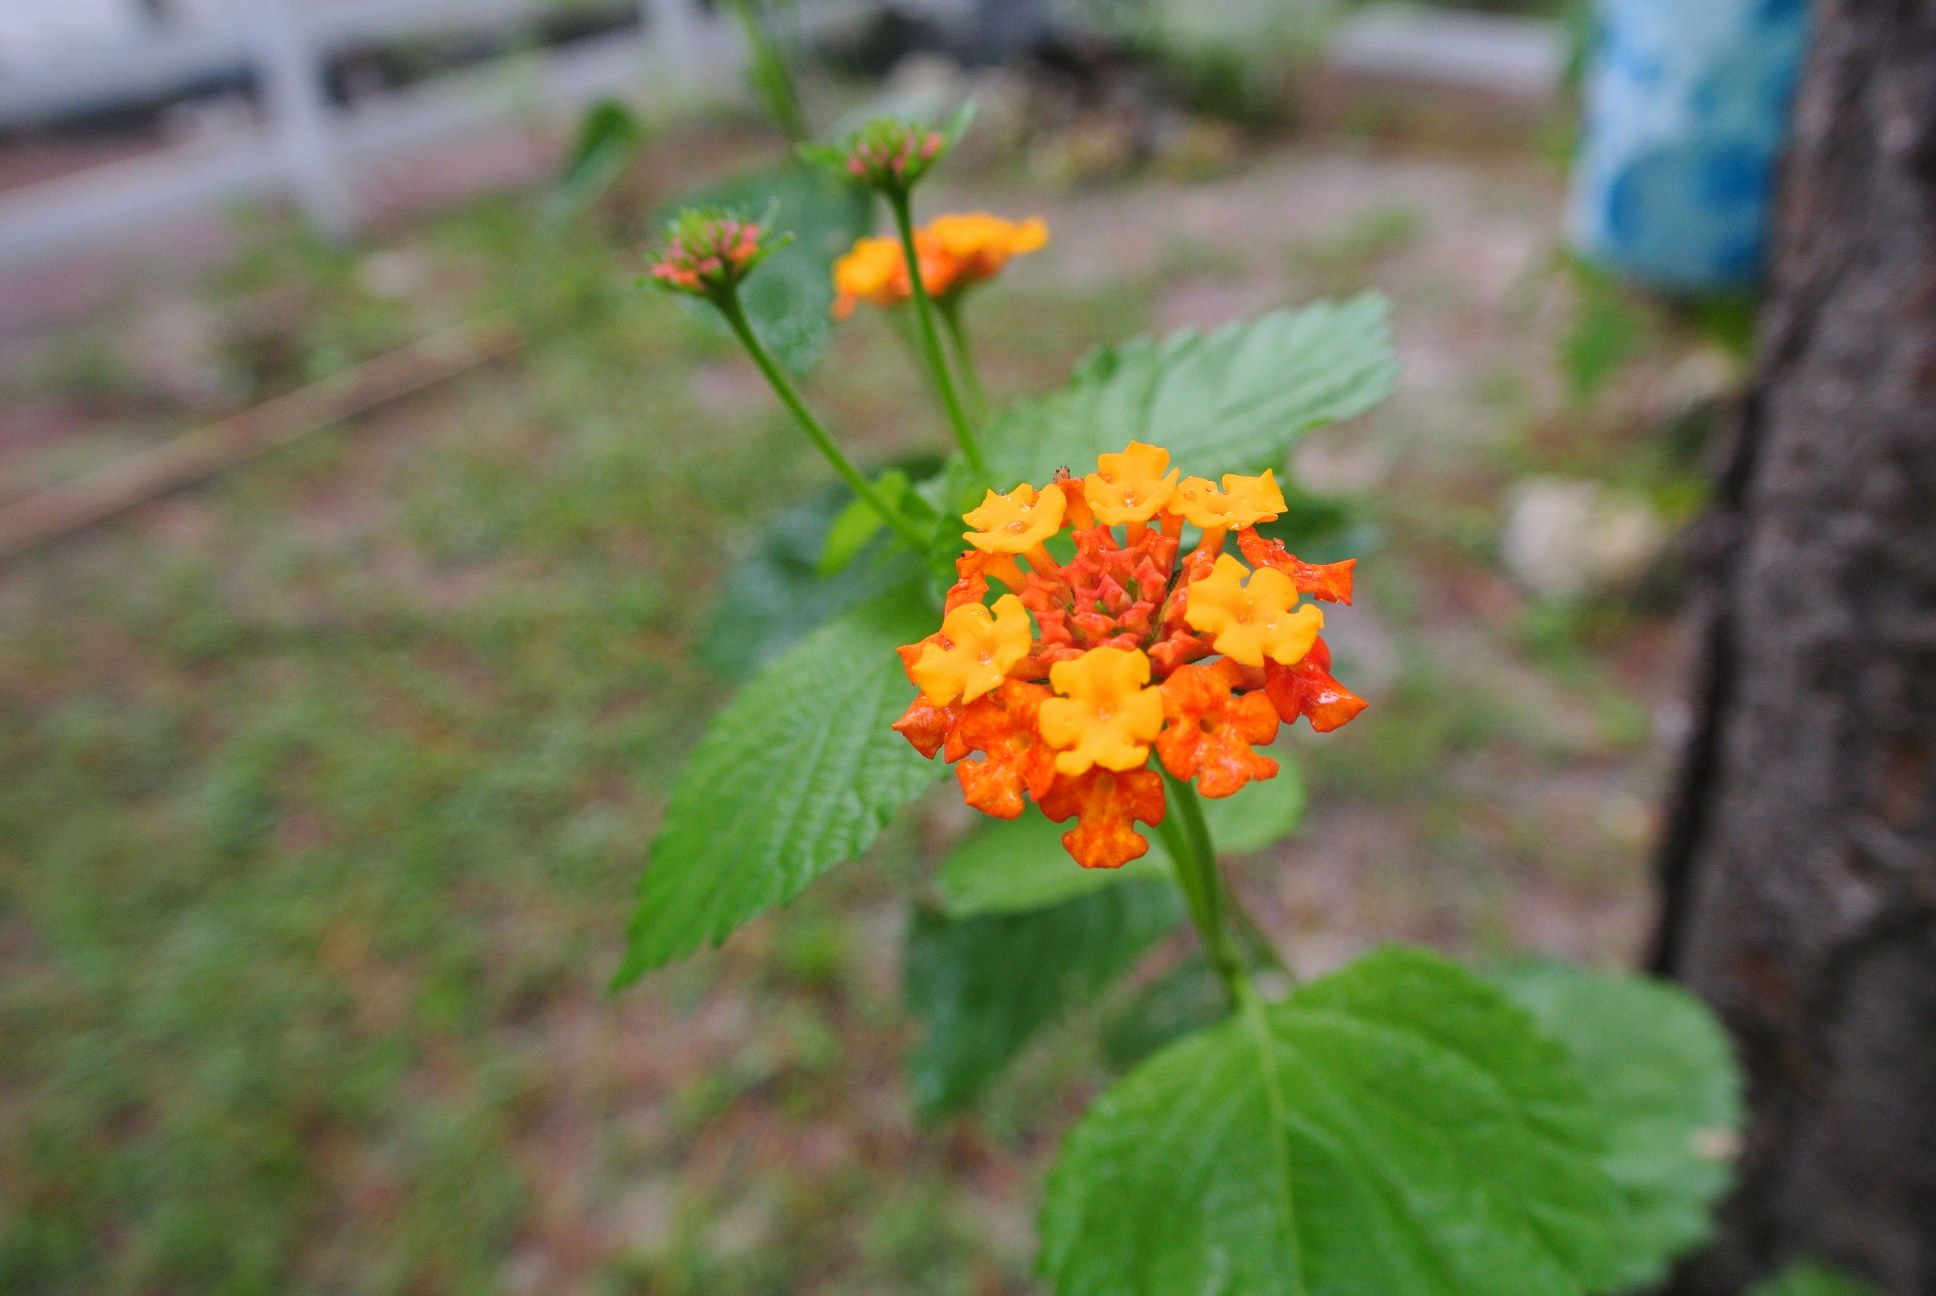 Lantanas Aromatic Flower Clusters Called Umbels Are A Mix Of Red